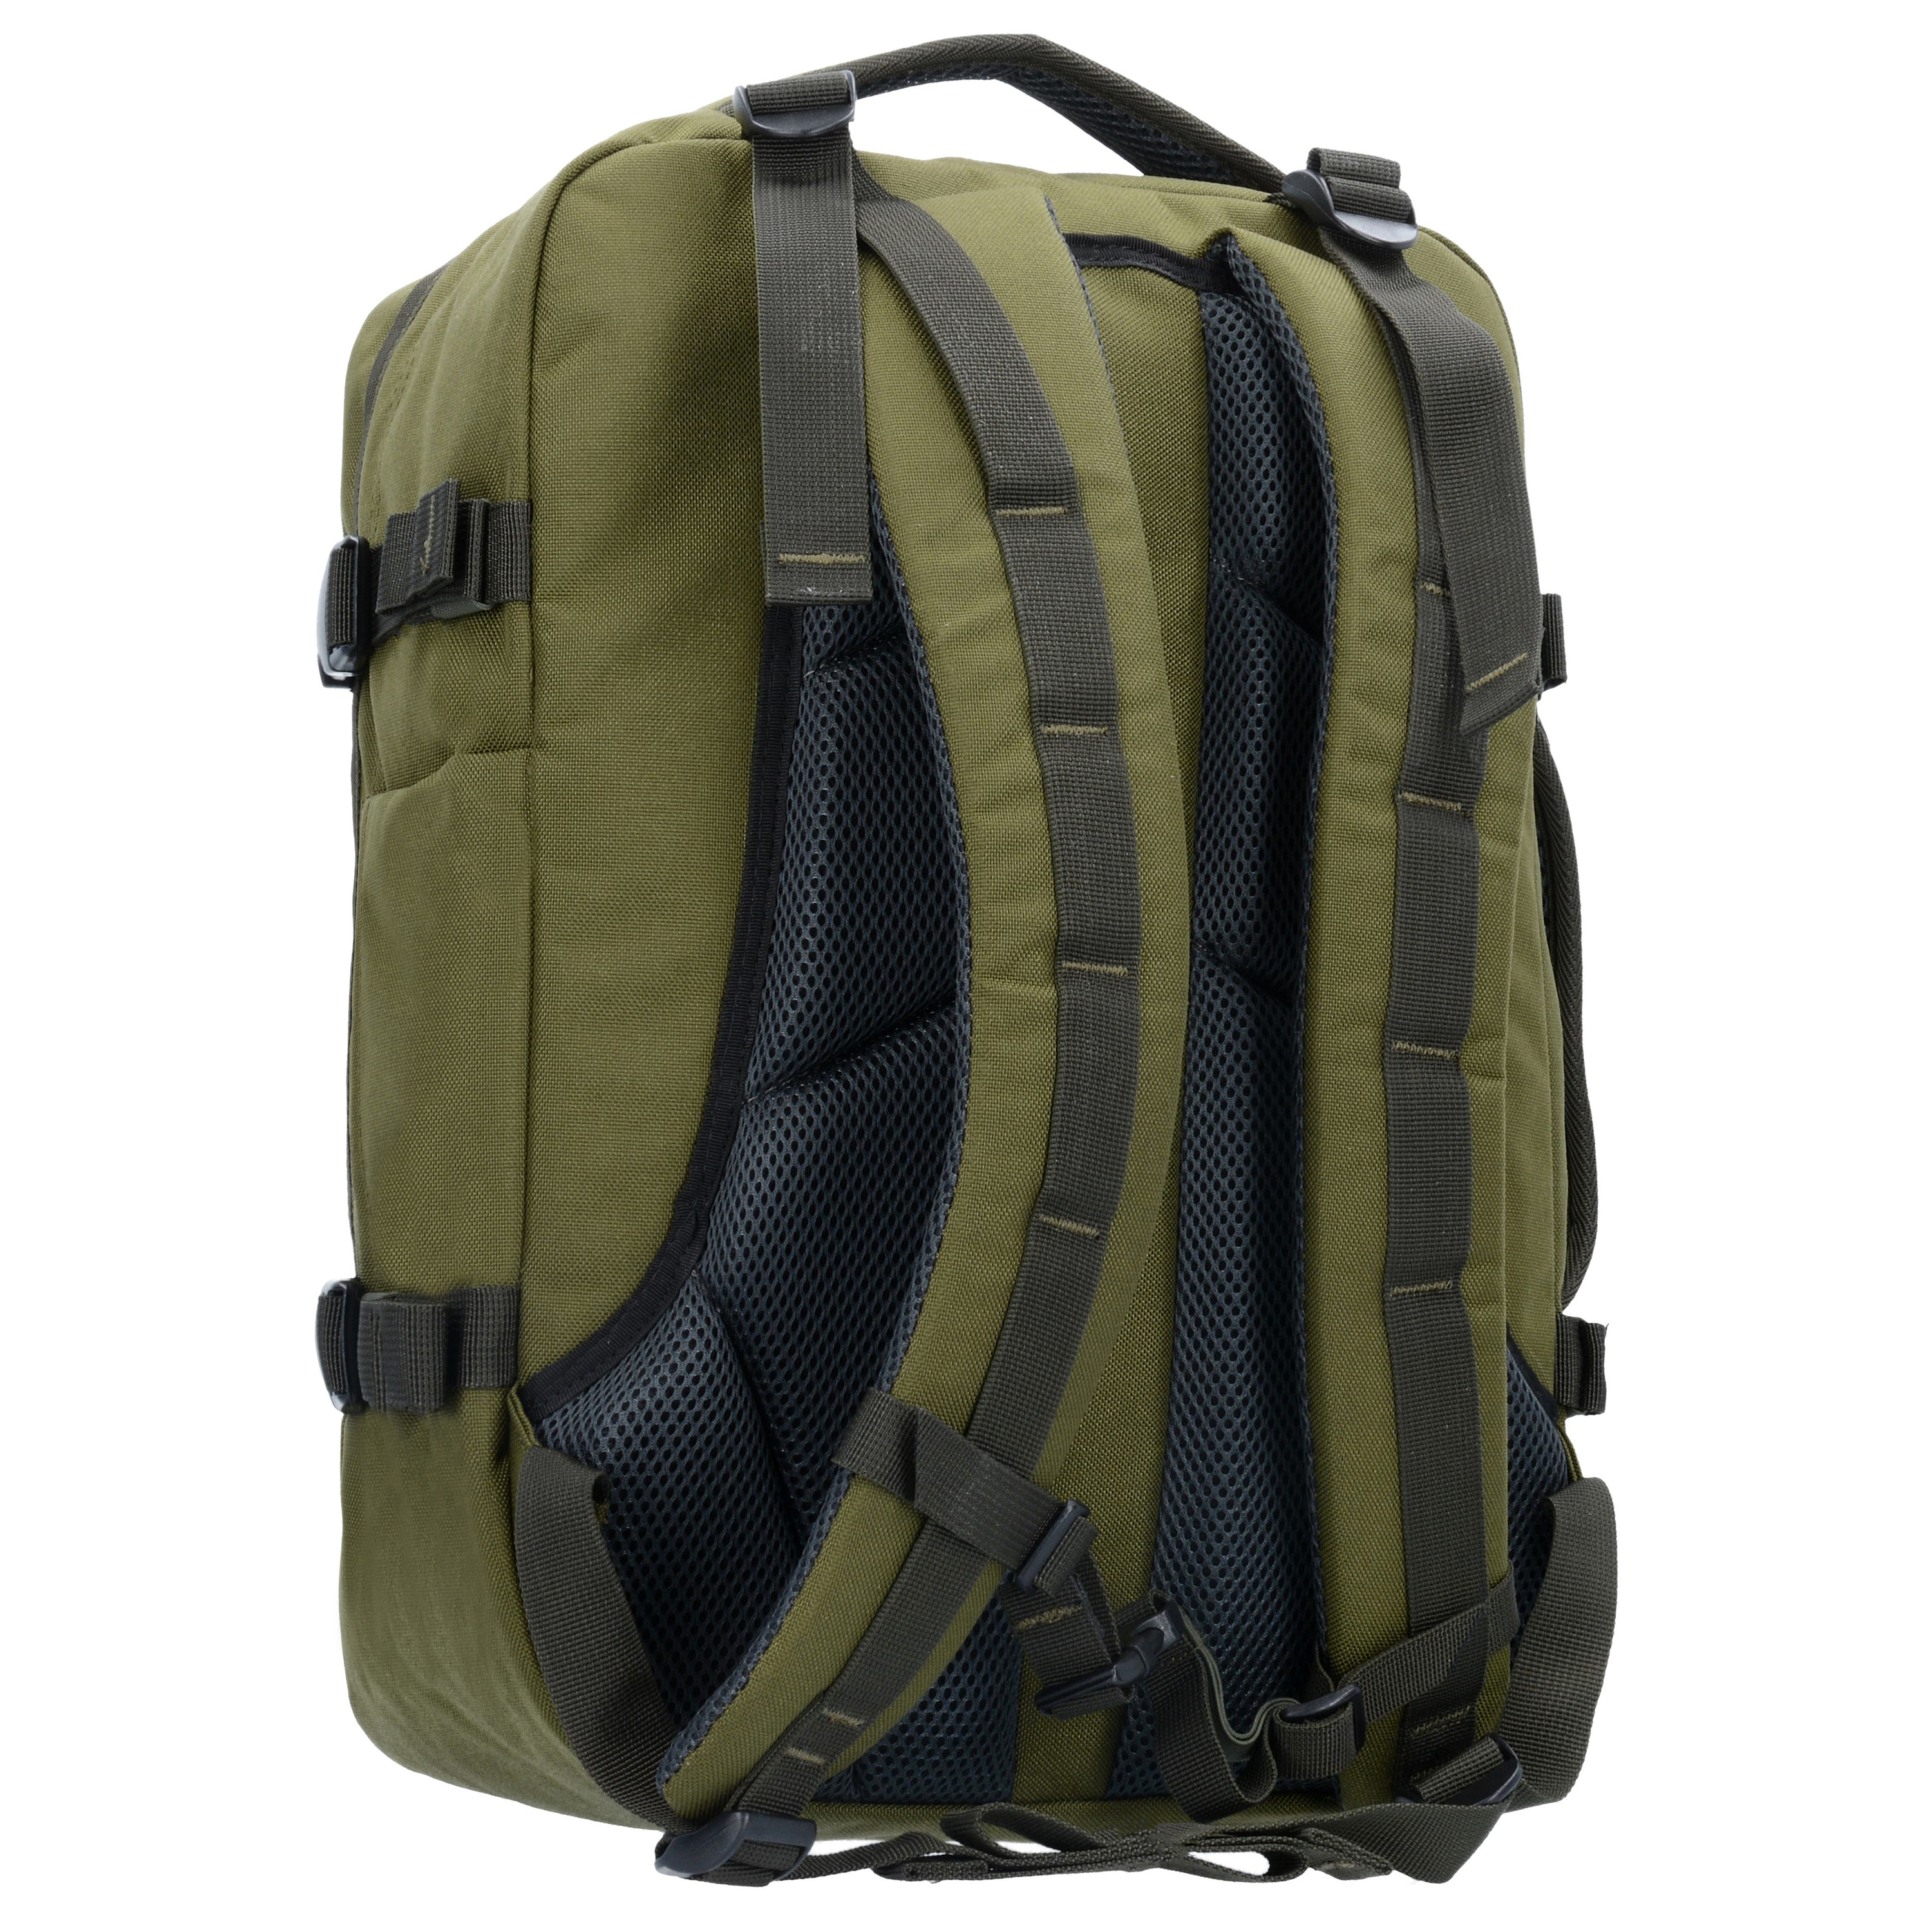 Cabinzero Military 28L Cabin Backpack Rucksack 44 cm in military green günstig kaufen